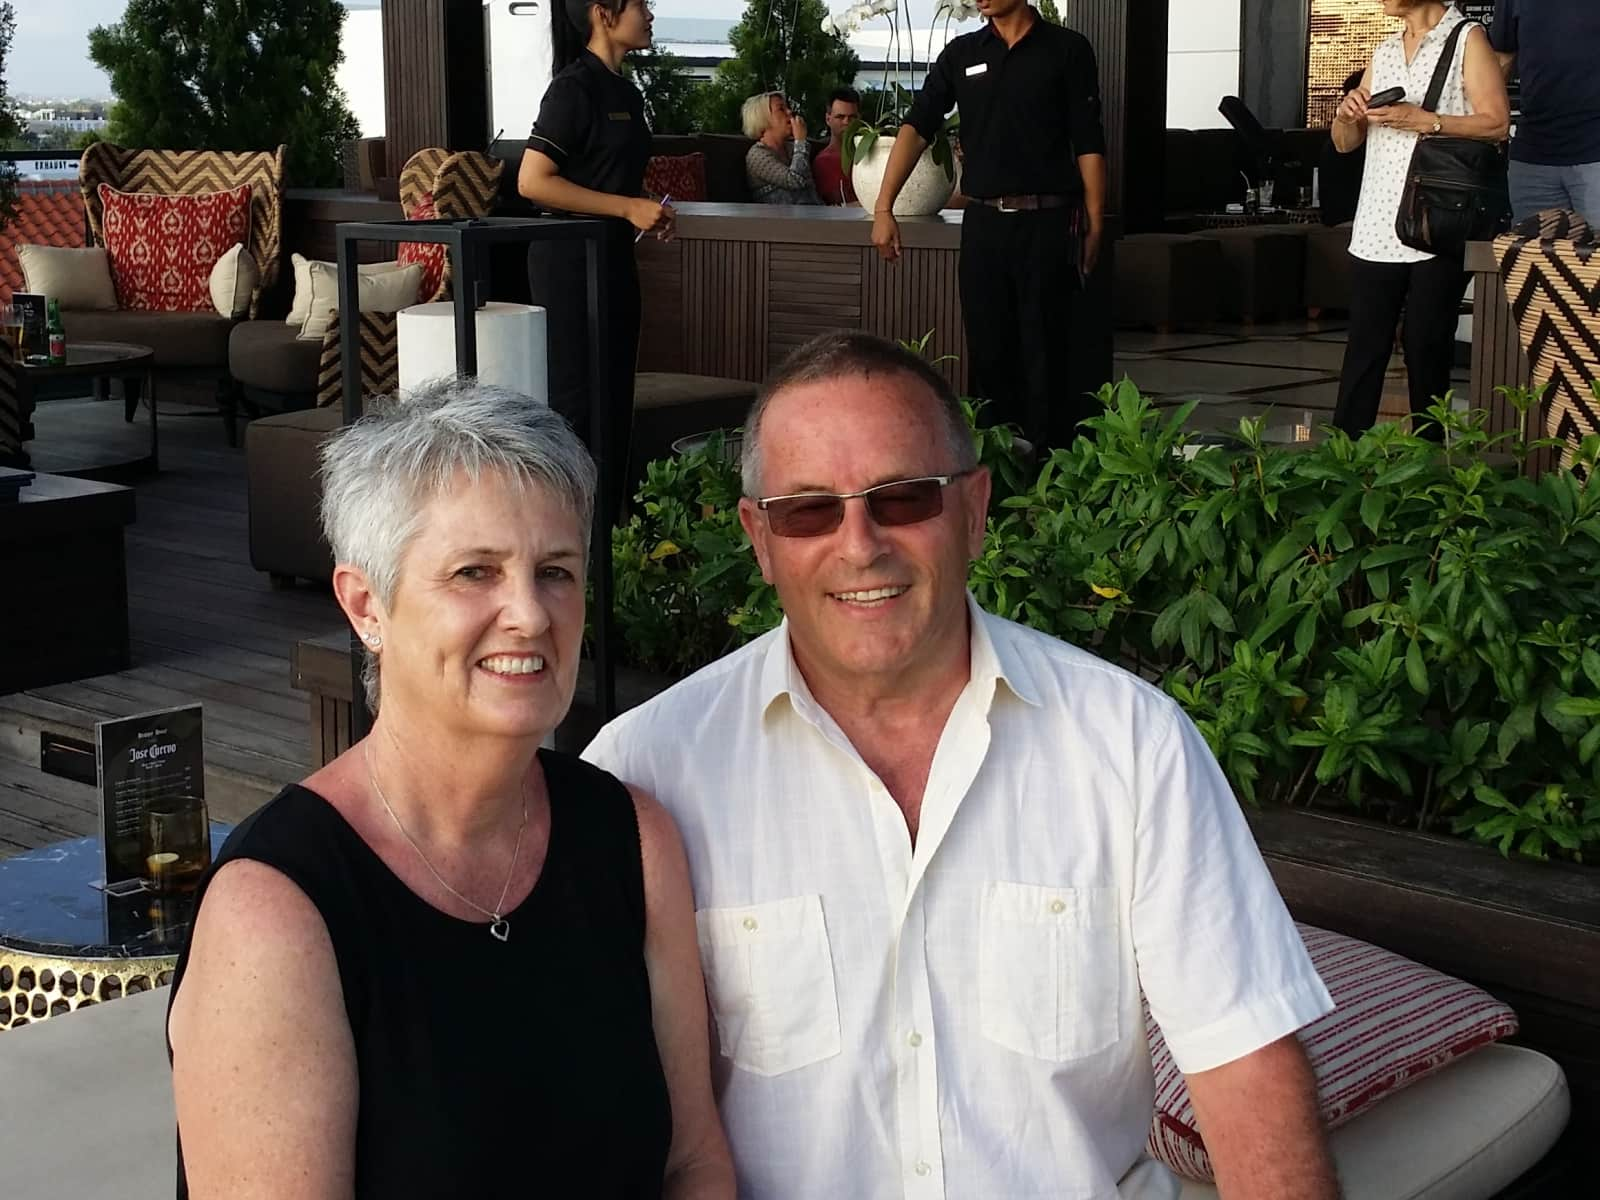 Cherry and garry & Garry from Silverdale, New Zealand